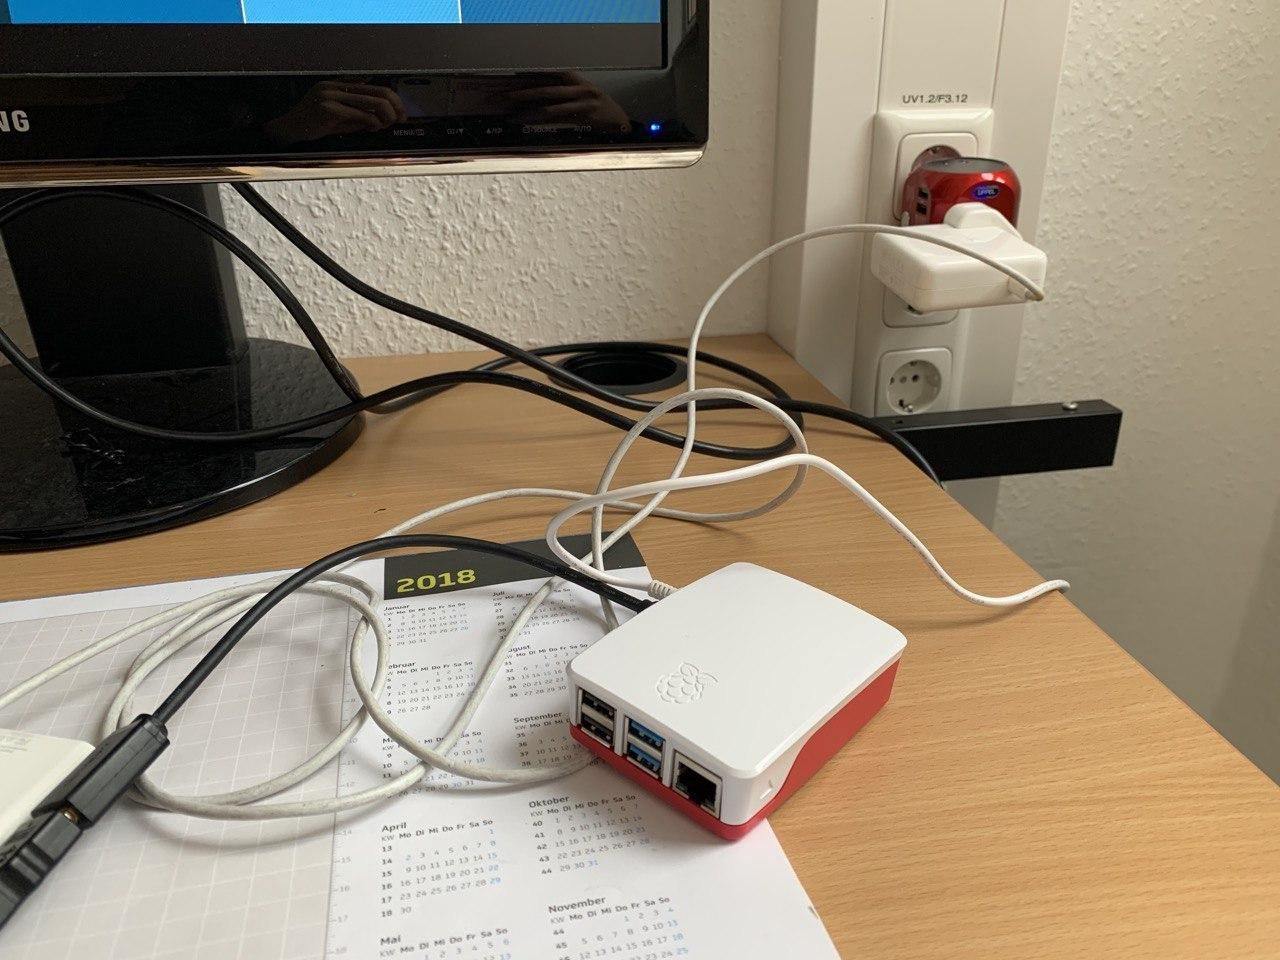 Digital Bullentins using Raspberry-Pi